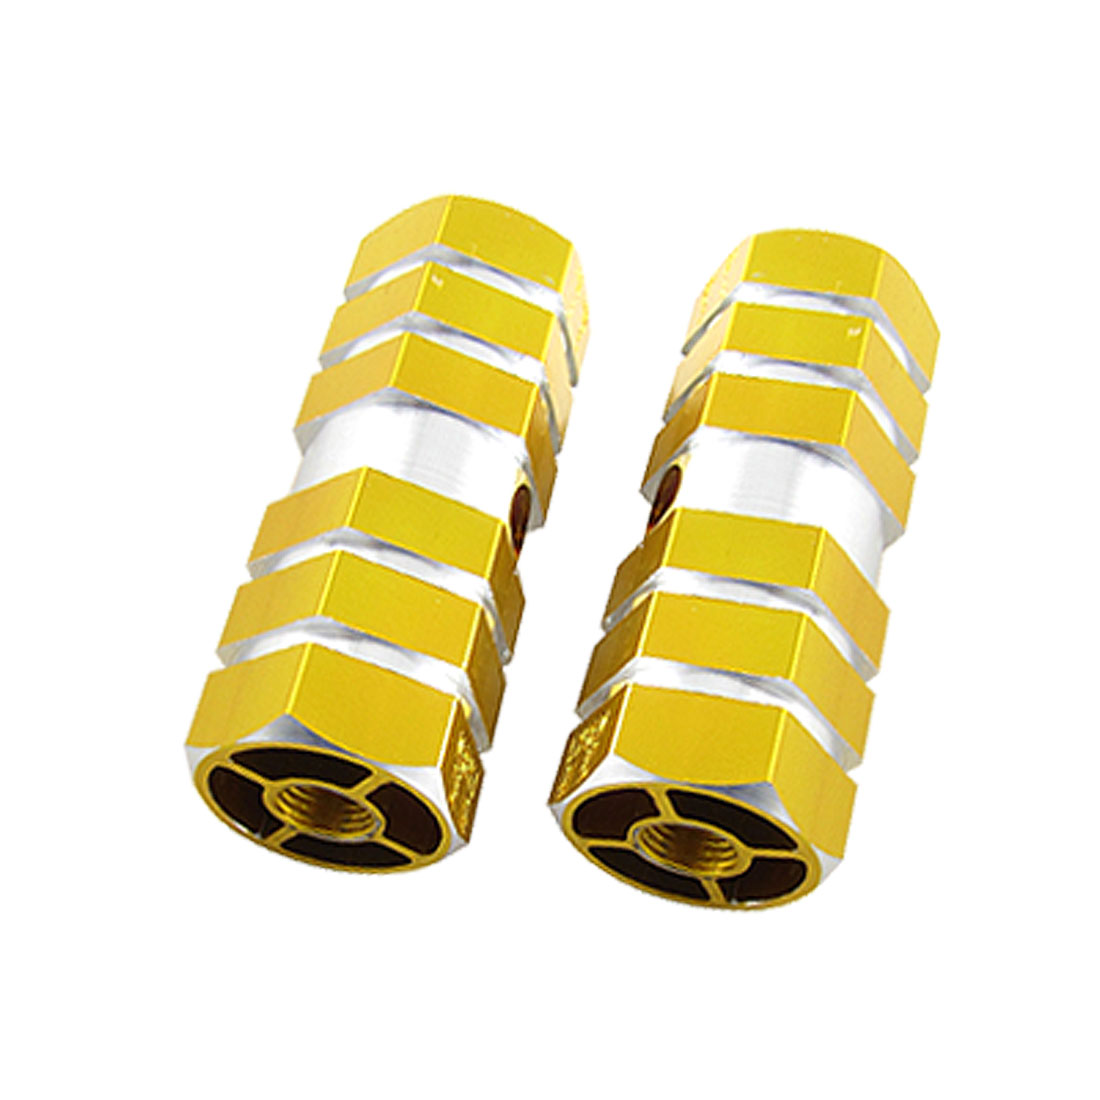 Children's Bicycle Bike Stunt Axle Aluminum Foot Pegs Golden for BMX